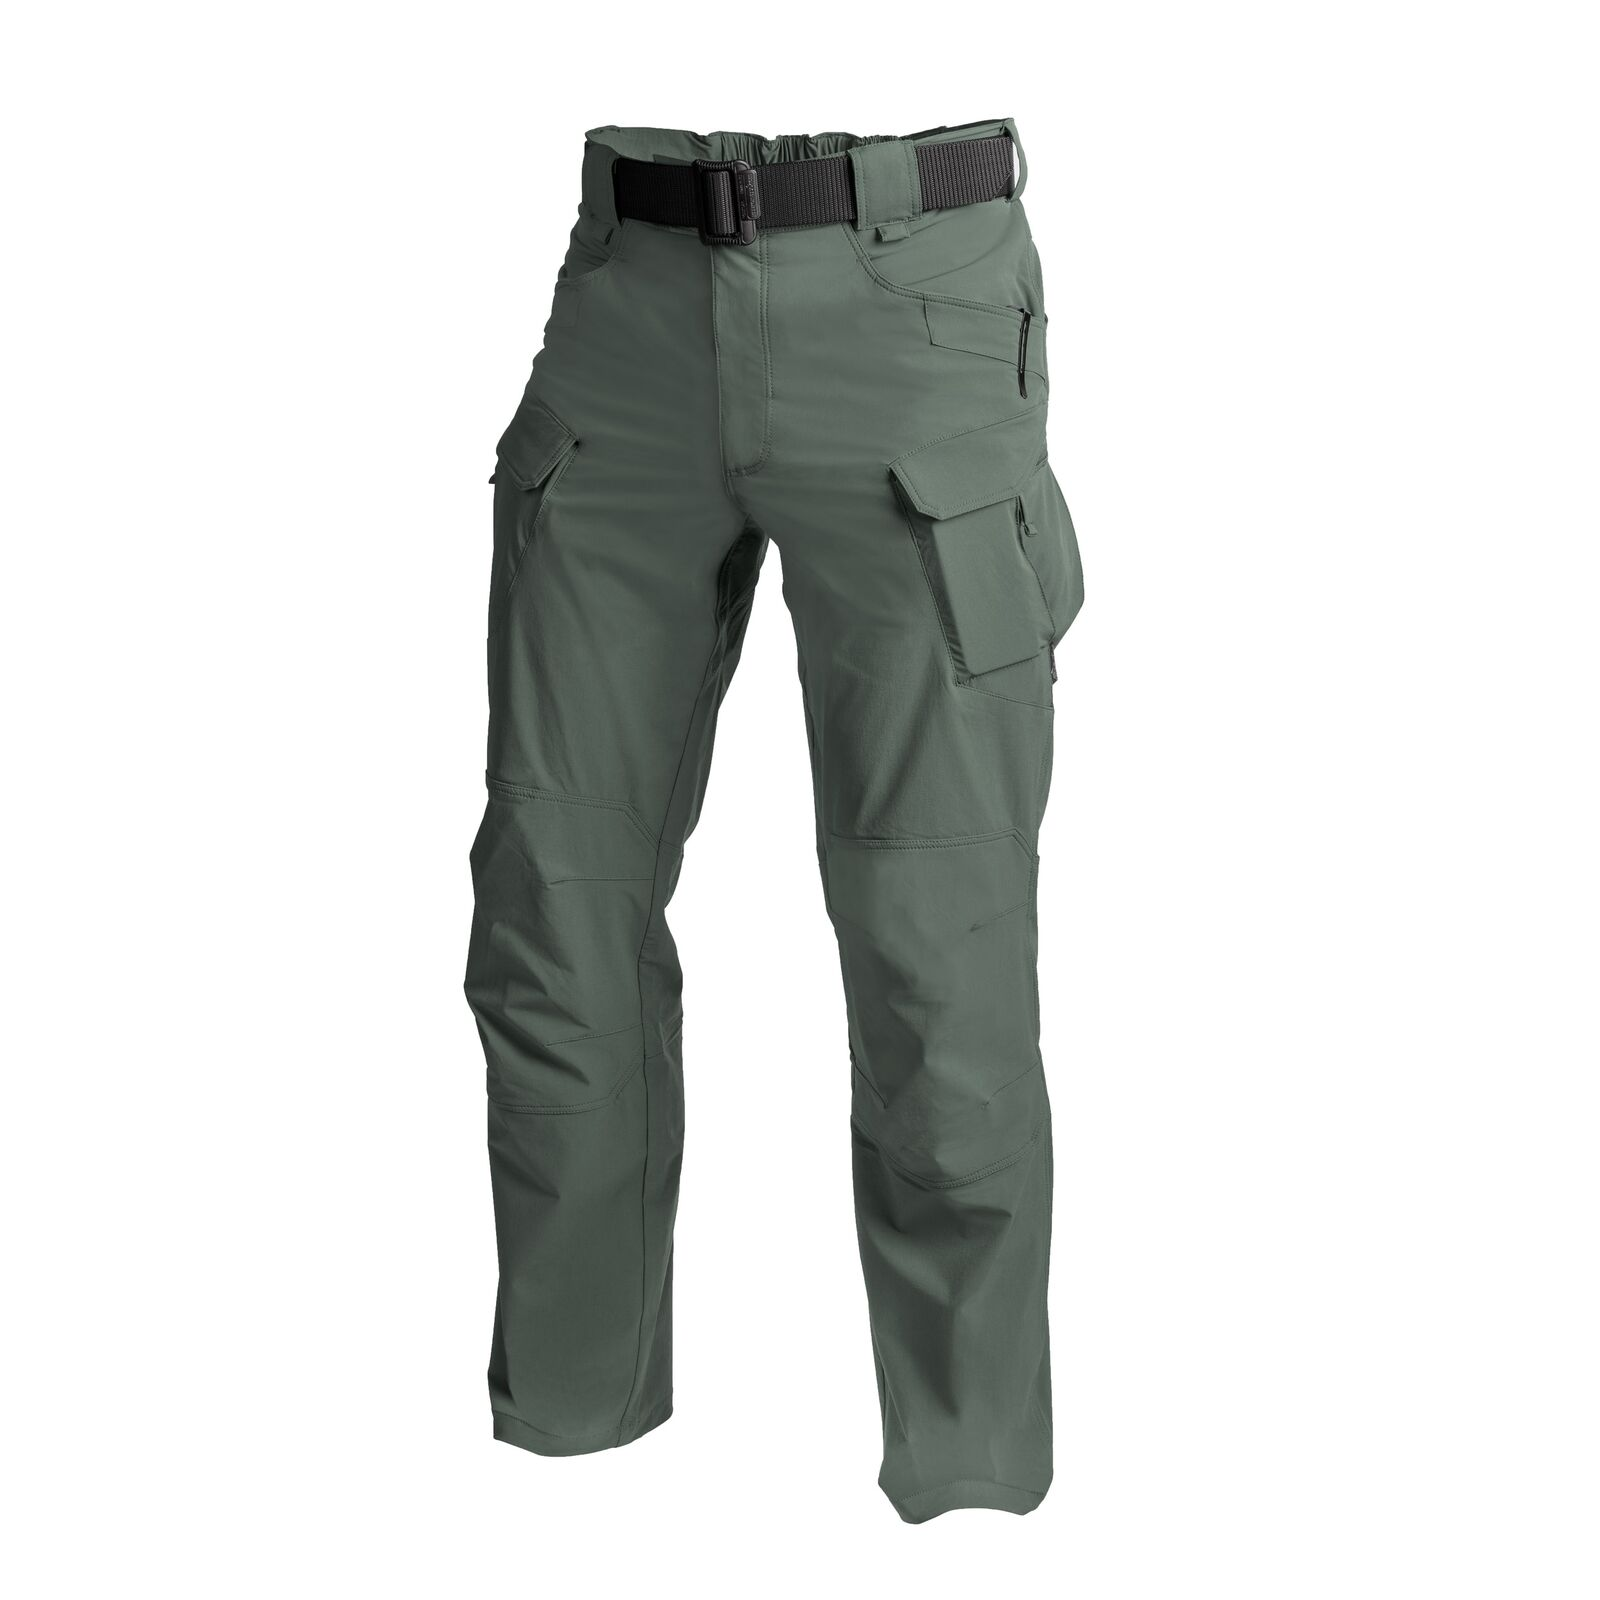 Helikon-Tex OTP Hose (Outdoor Tactical Pants) - VersaStretch - Olive Drab  | Am wirtschaftlichsten